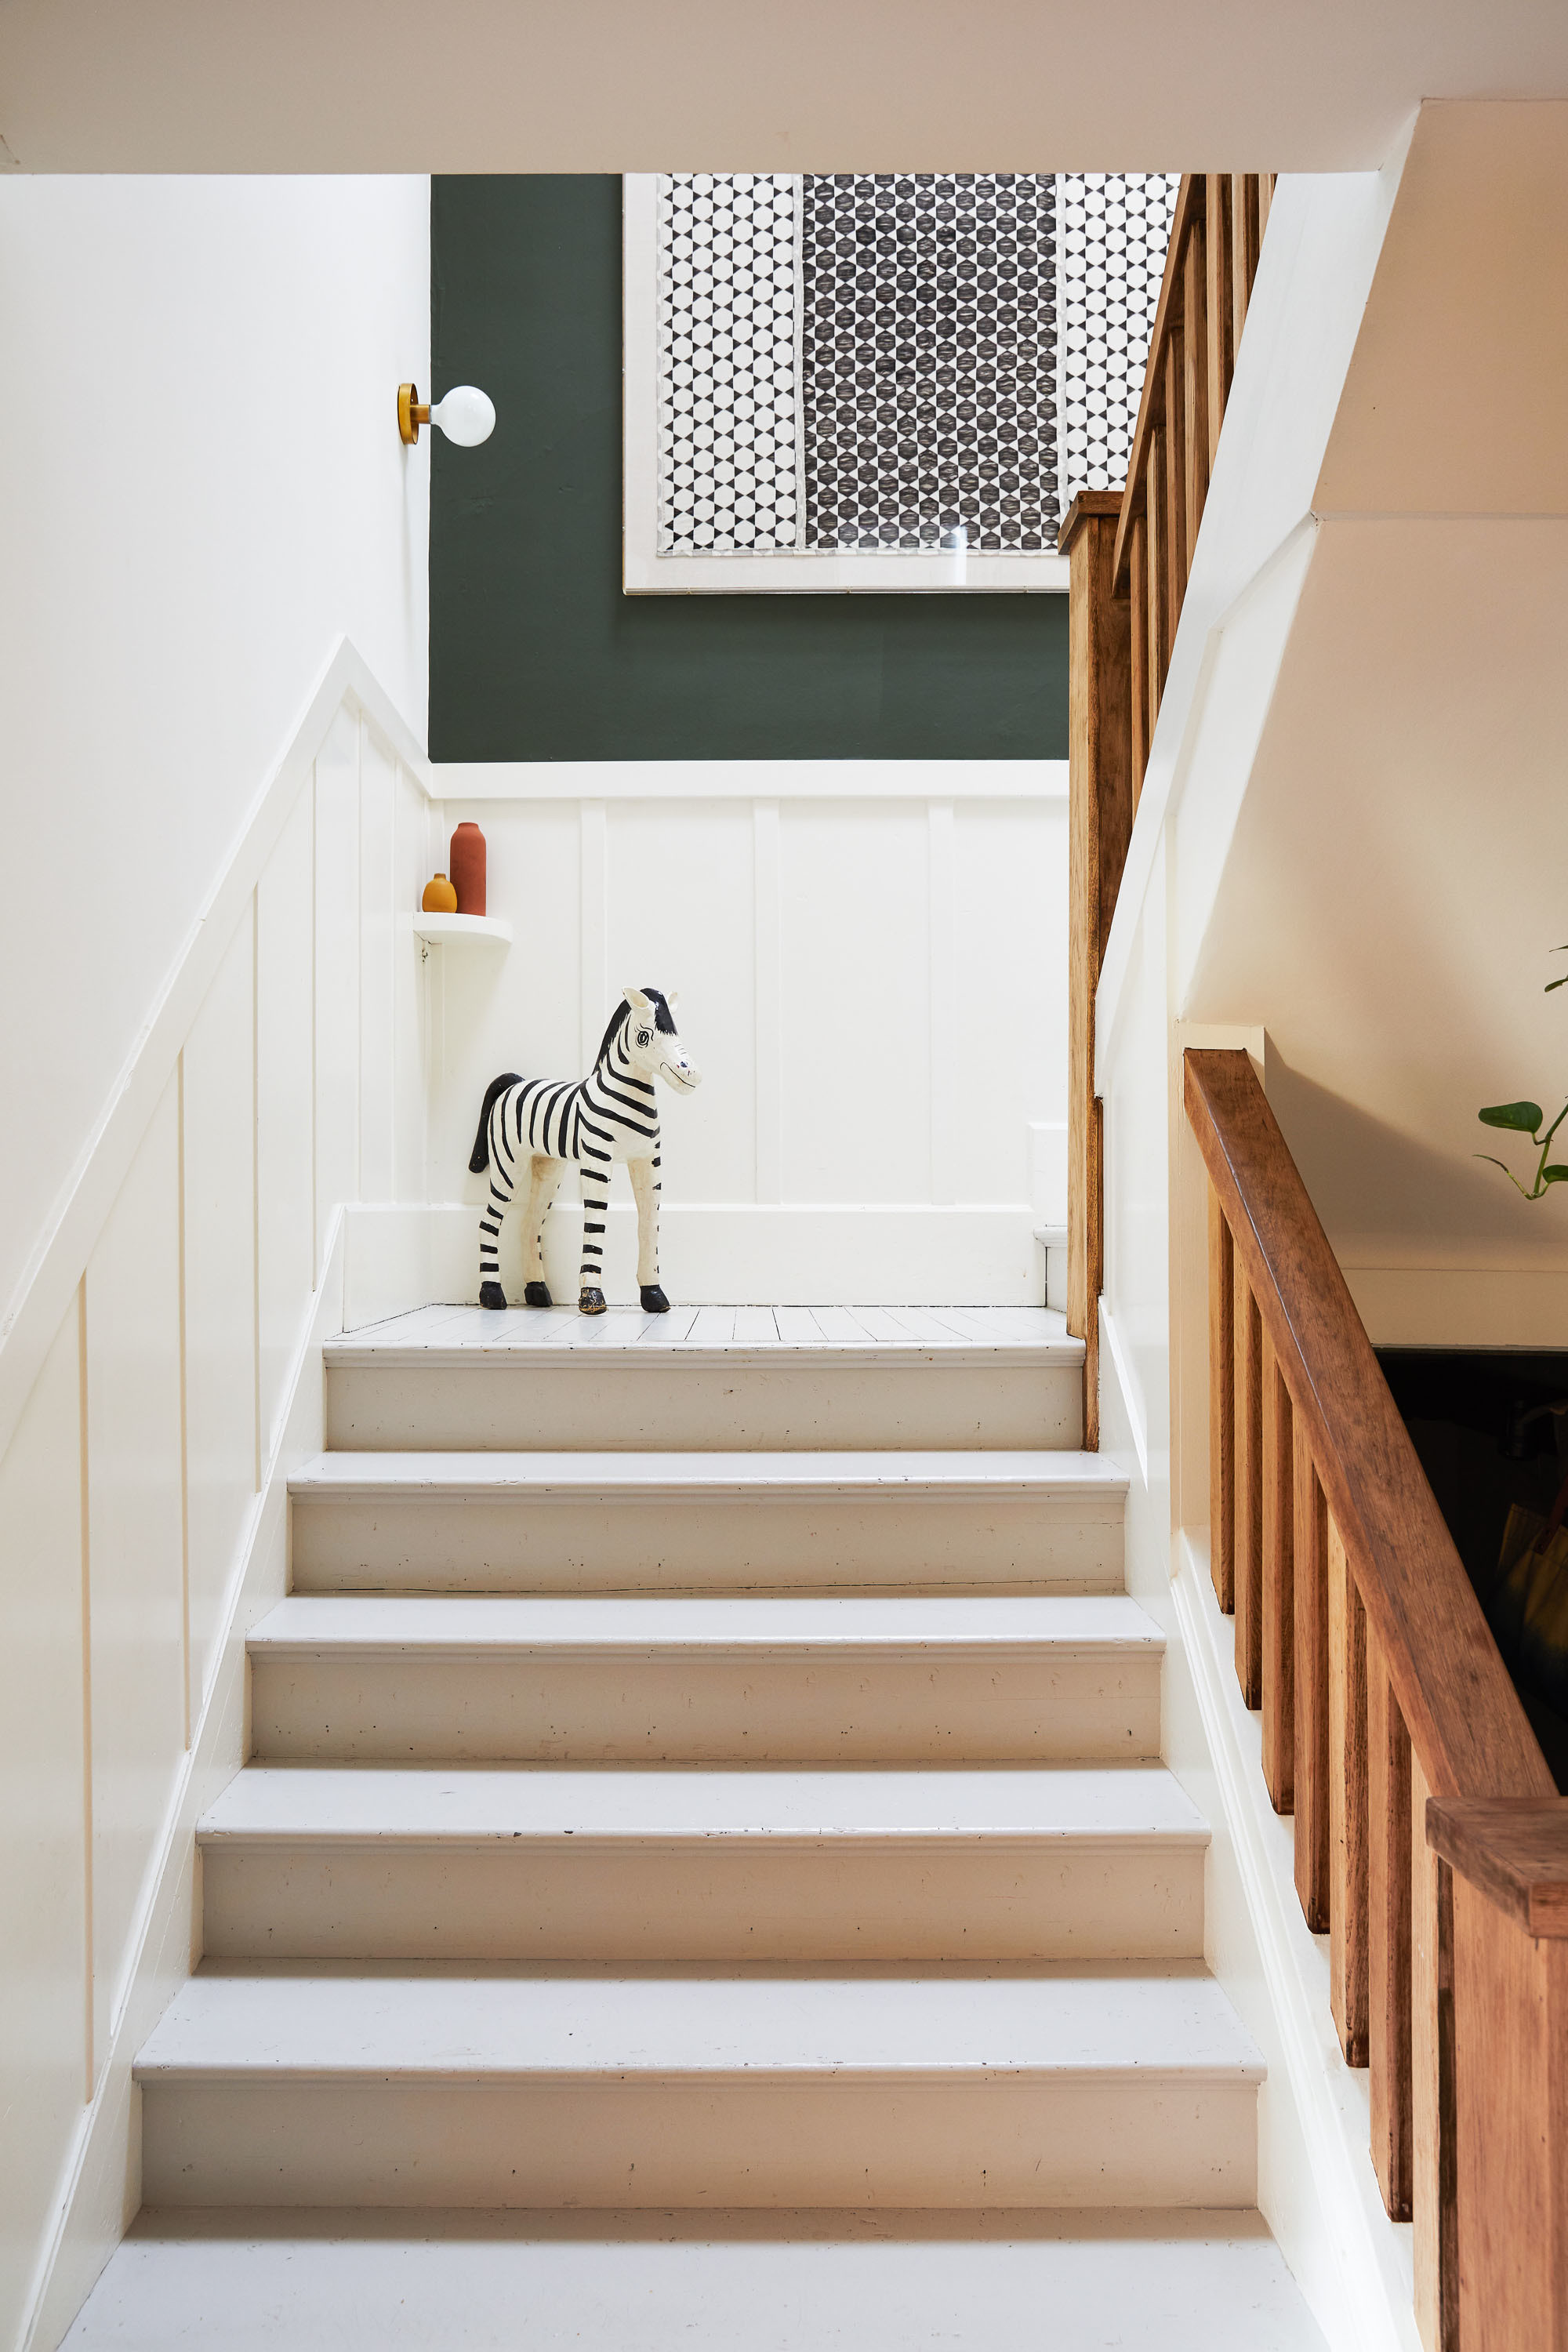 Green walls breathe new life into the heritage home. Sherwin Williams Paint | St. Frank Textile | Vintage Zebra | Heath Ceramics and The Citizenry Vases.